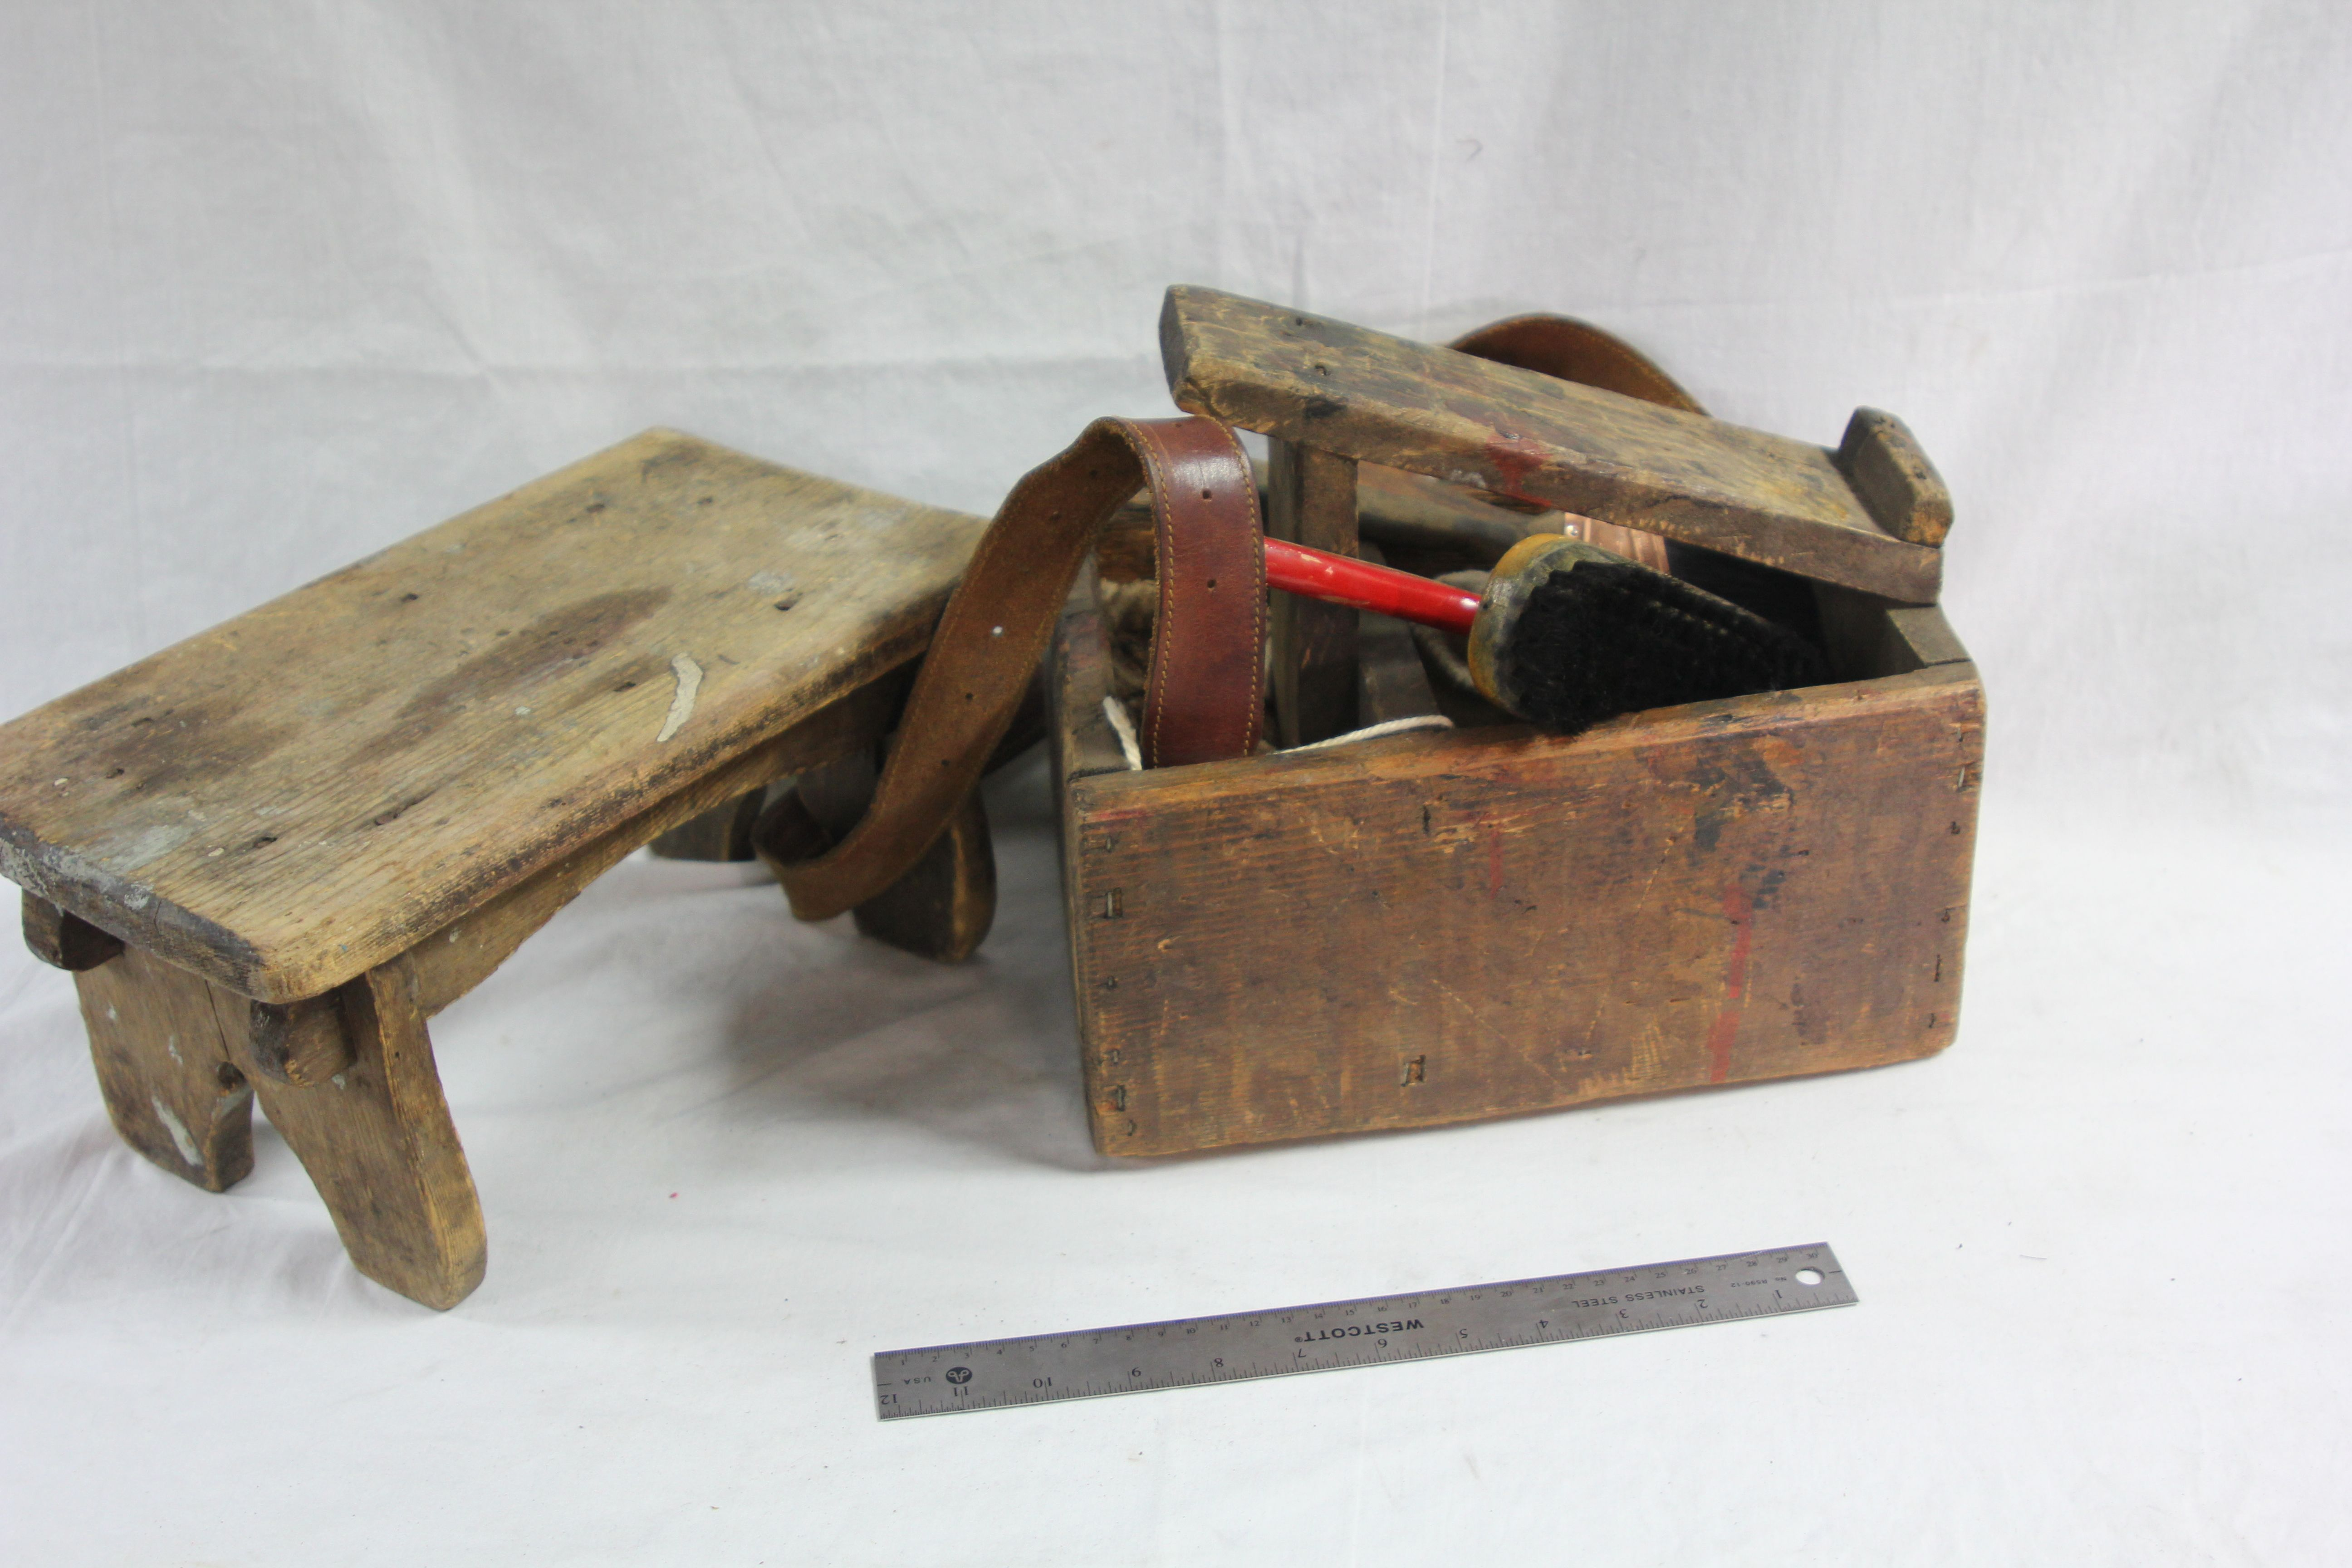 Period Shoe Shine Kit & Stool